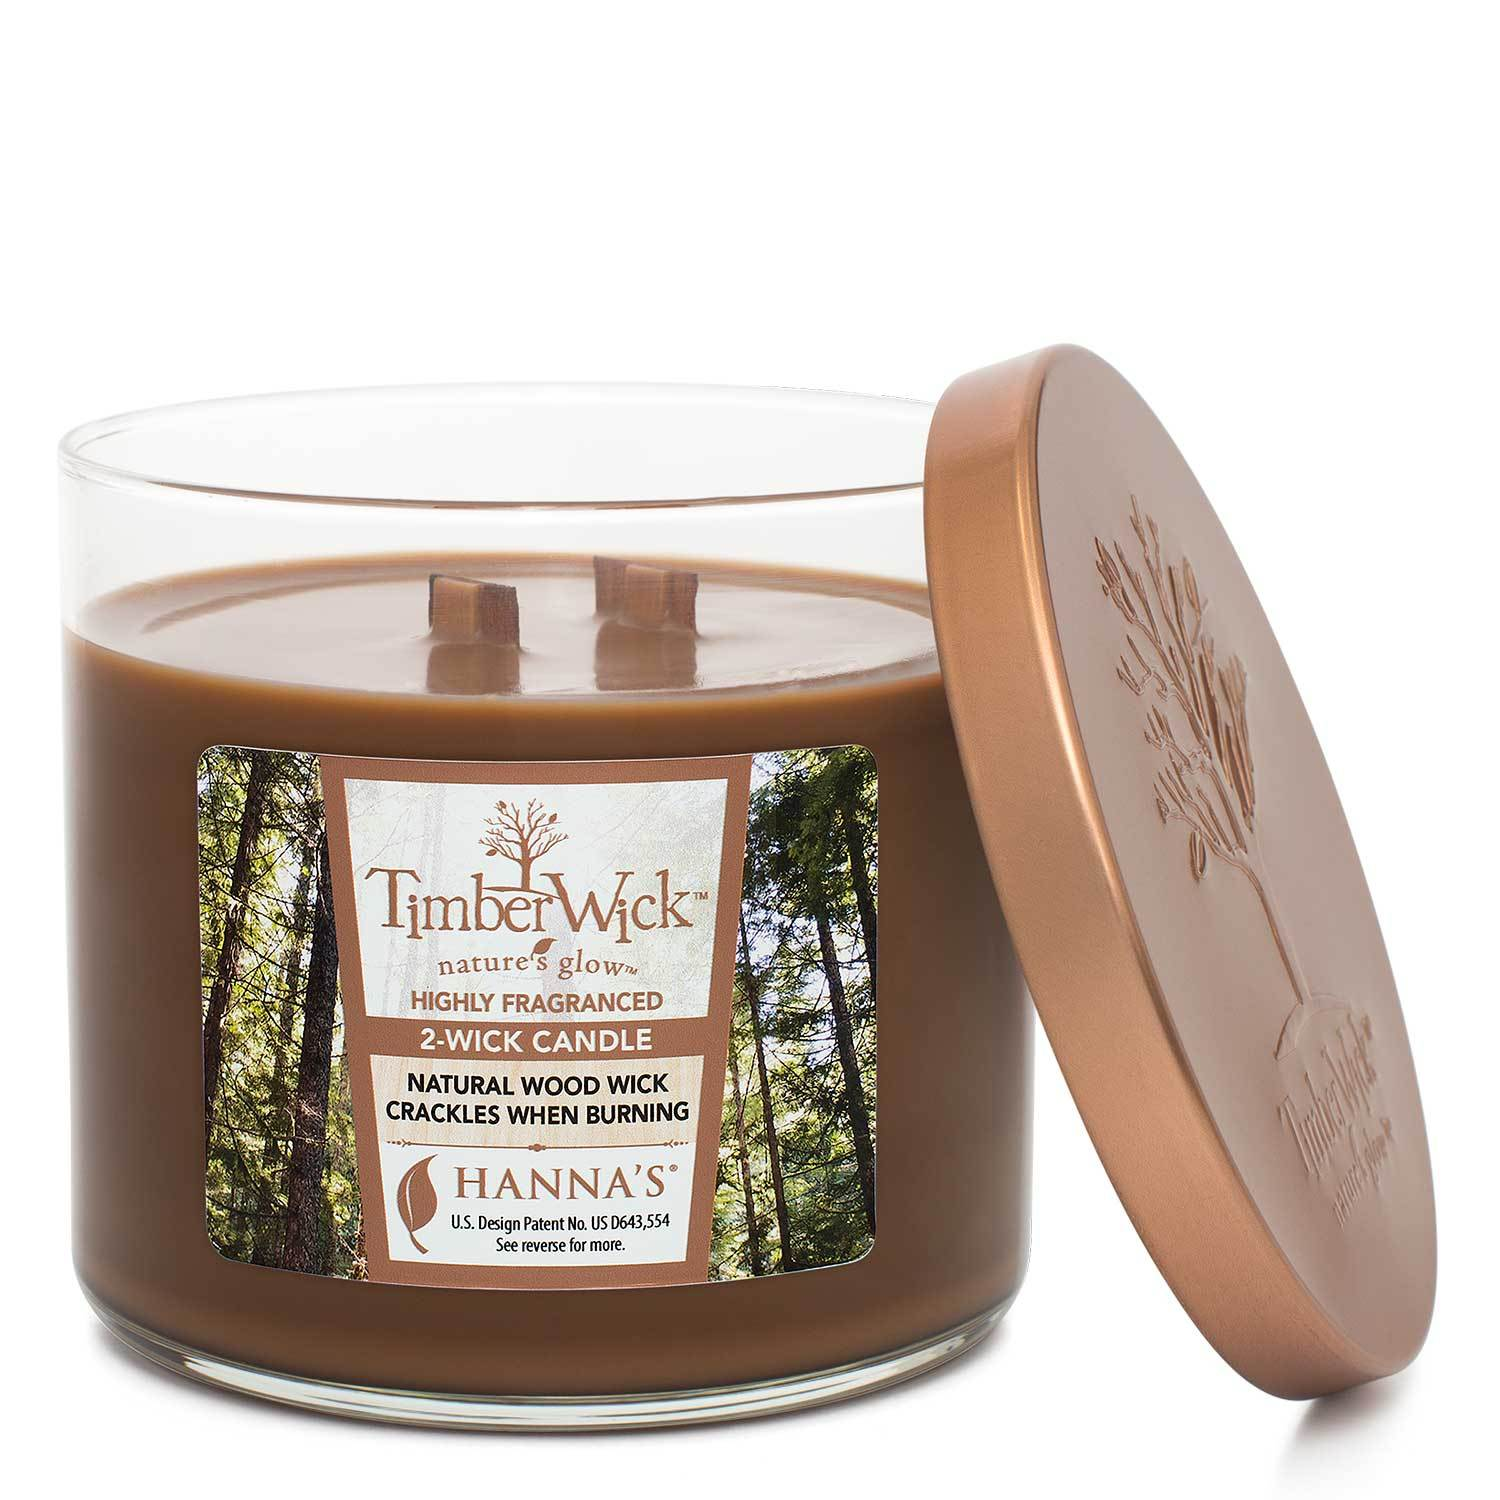 Timberwick Ember Glow Scented 2 wick Candle Candles Candlemart.com $ 14.99